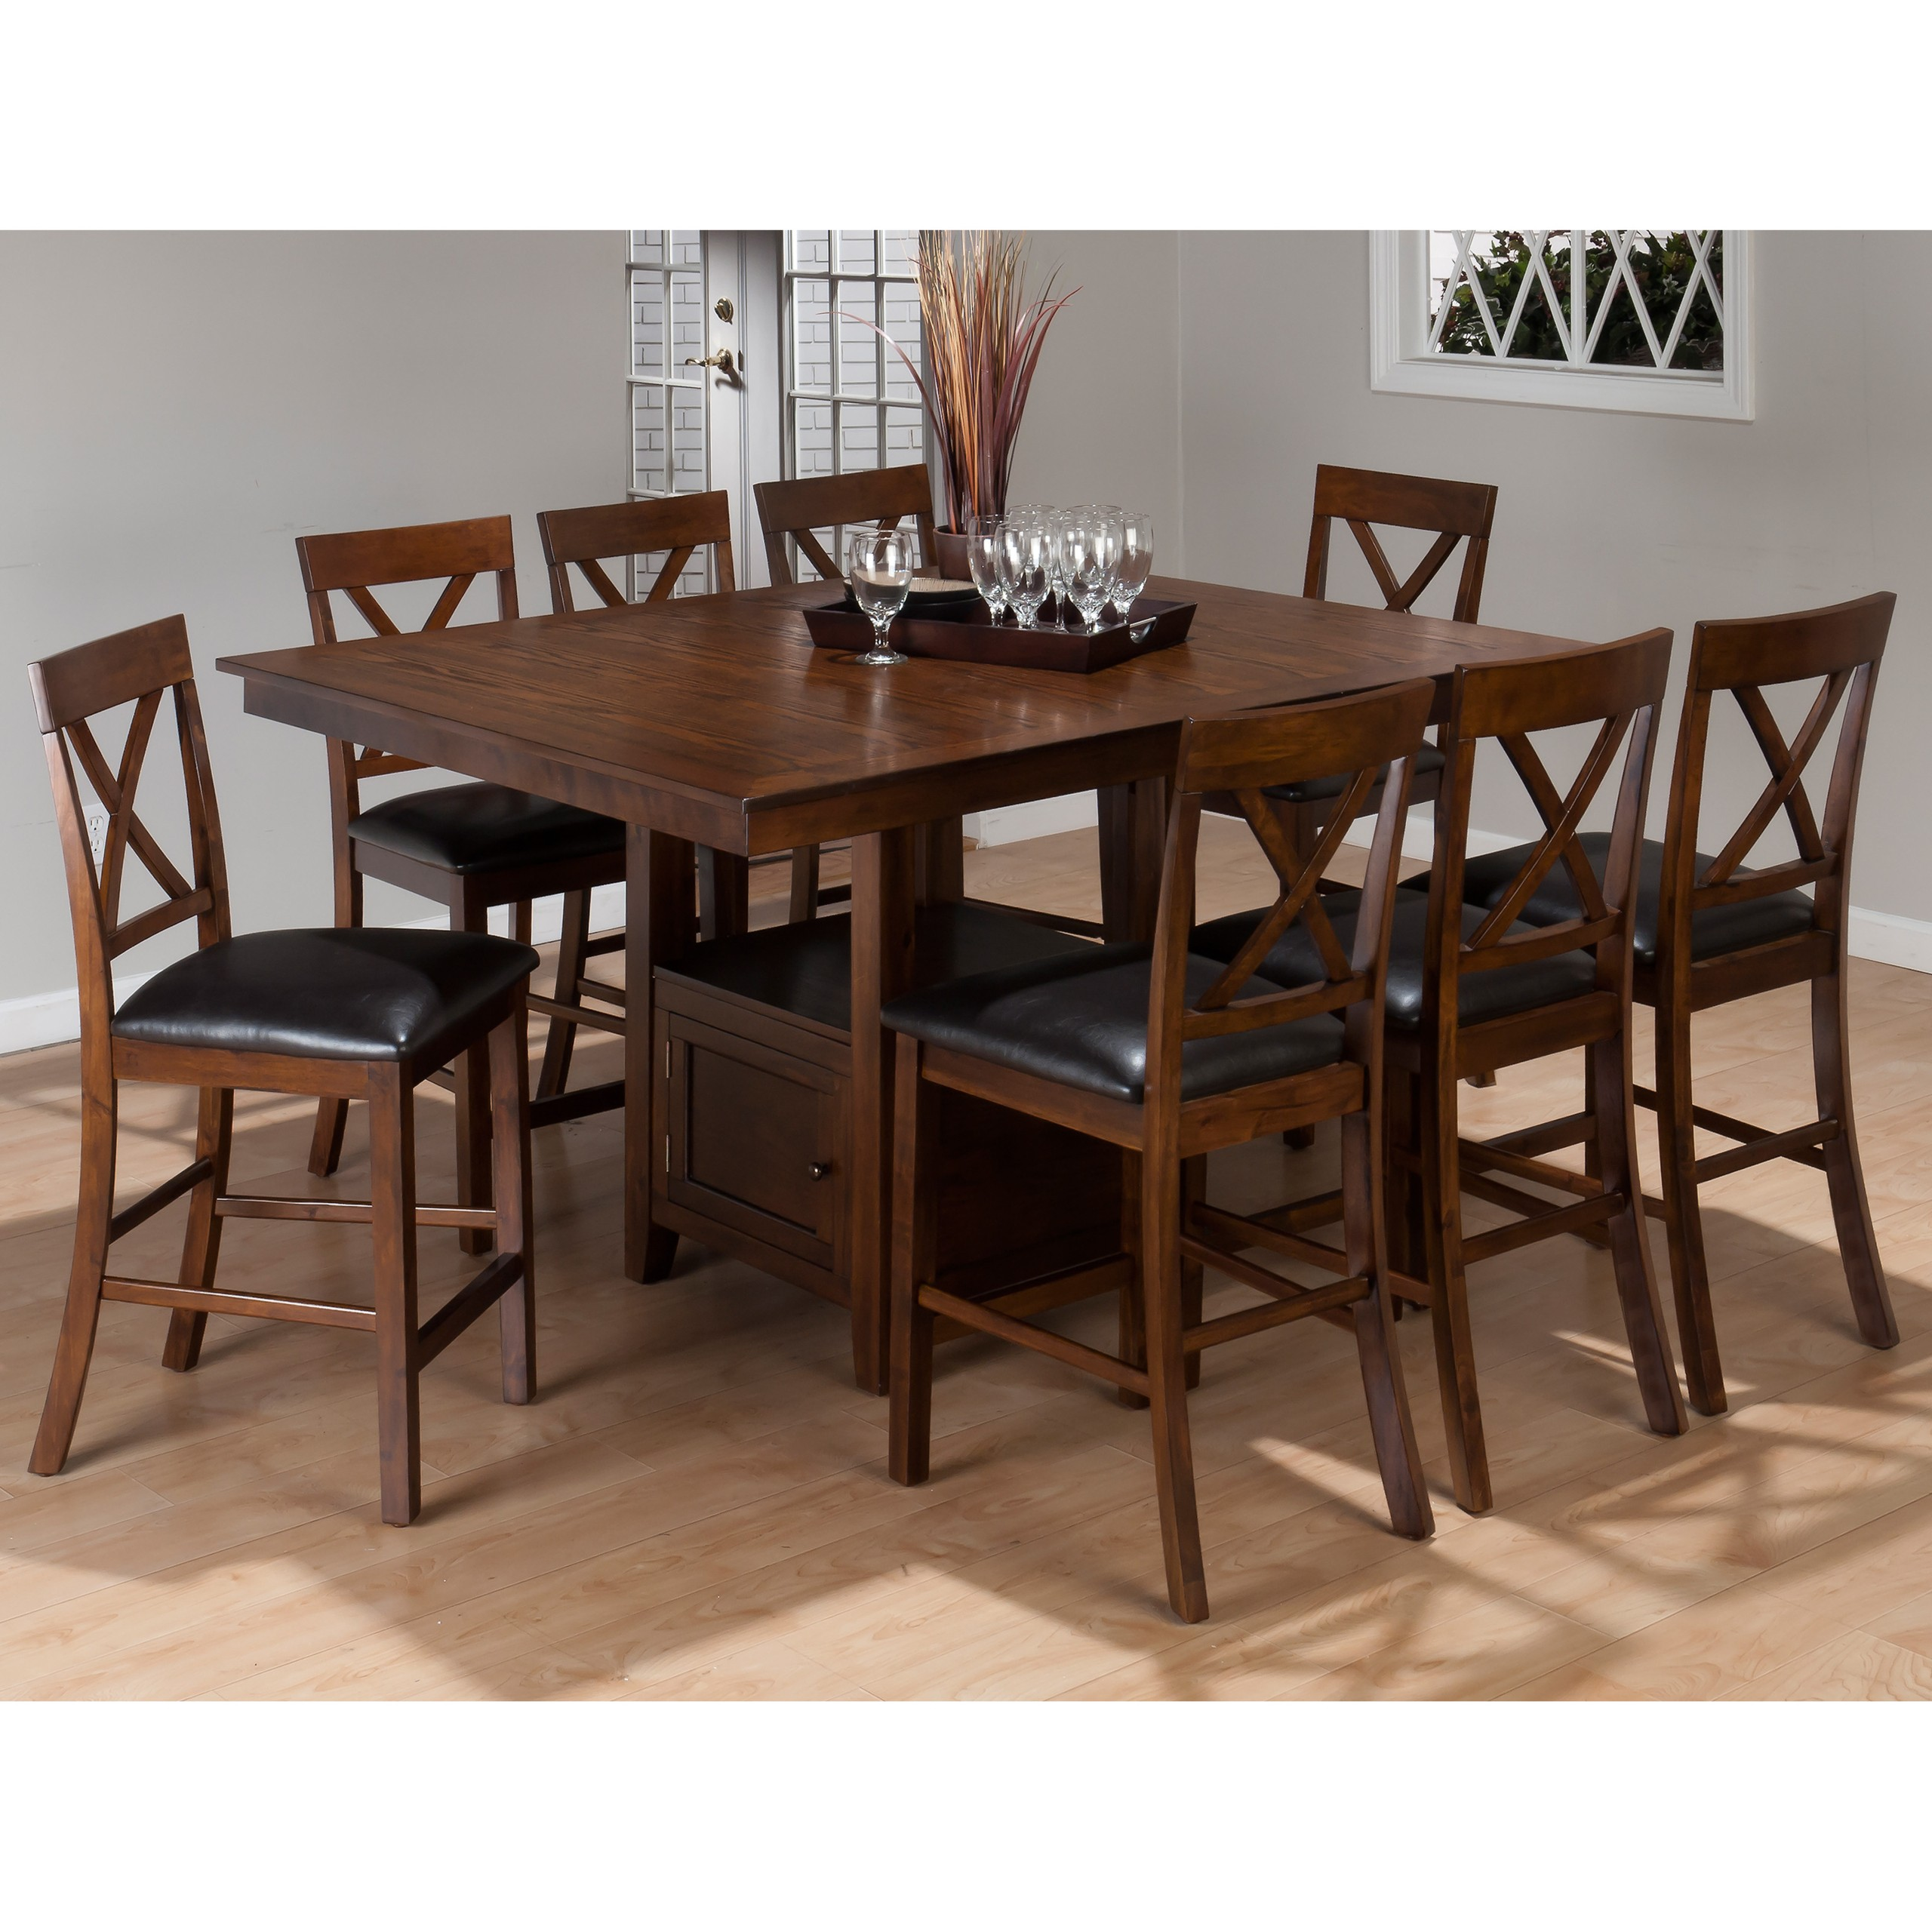 Counter height table sets with storage 3  sc 1 st  Foter & Counter Height Table Sets With Storage - Foter